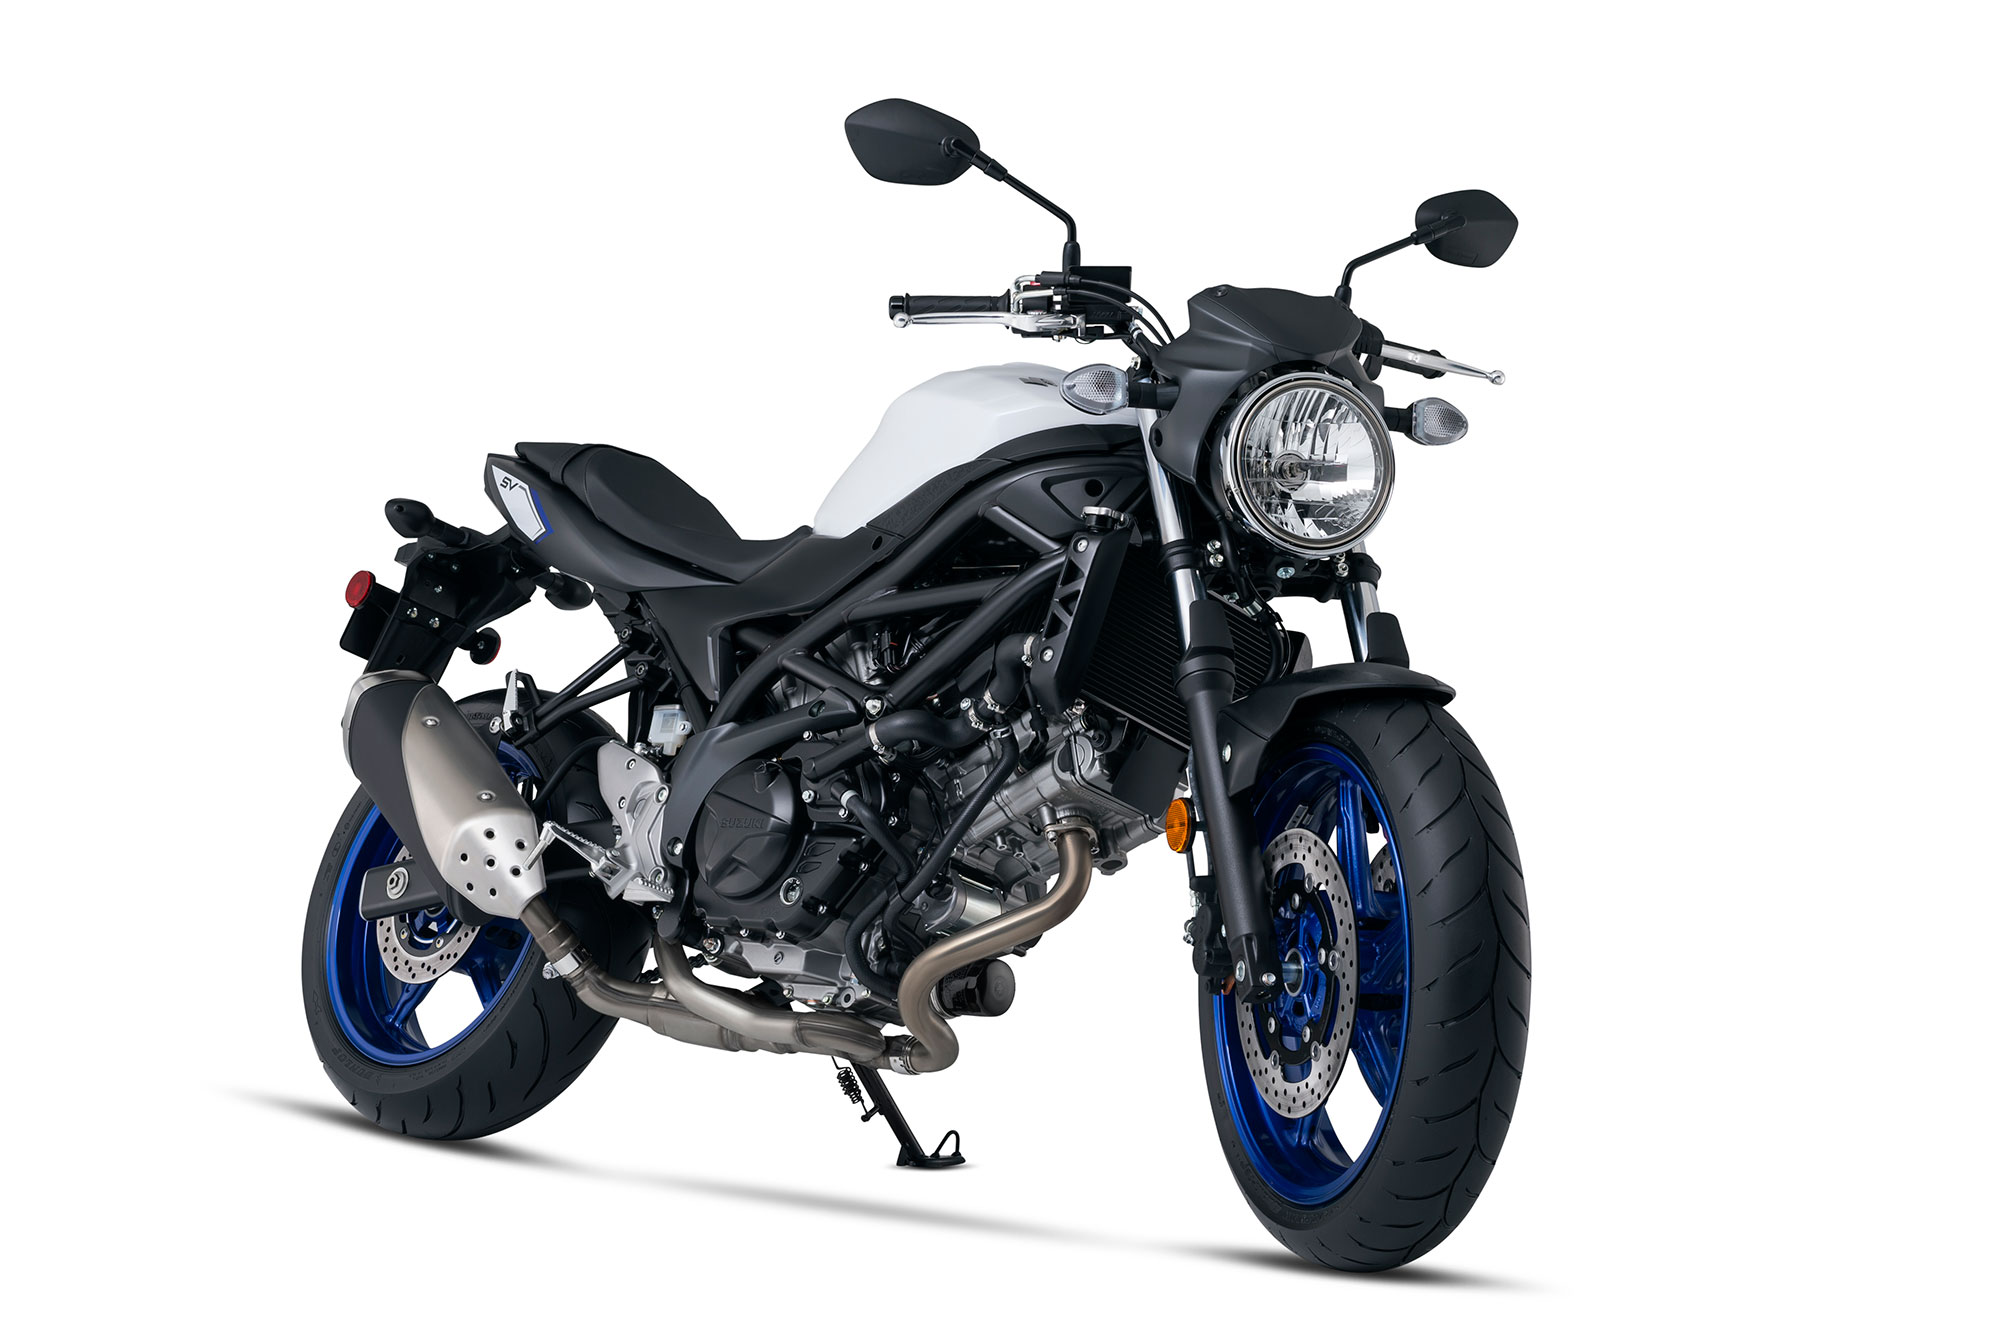 suzuki sv650 specs 2017 2018 autoevolution. Black Bedroom Furniture Sets. Home Design Ideas